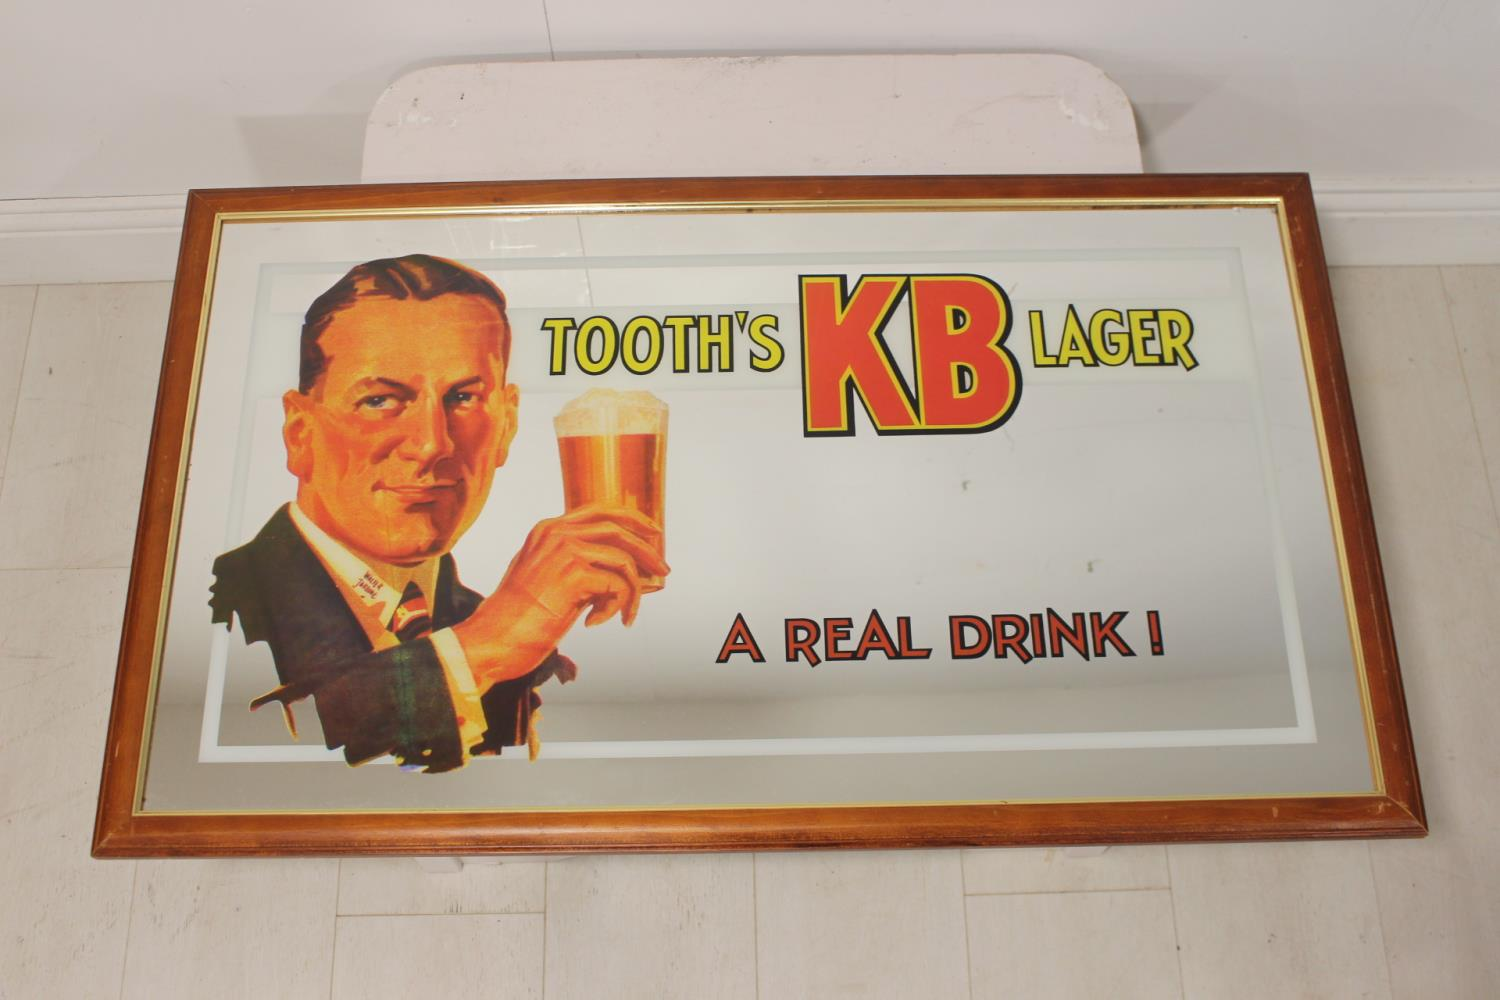 Tooth's KB Lager advertising mirror.